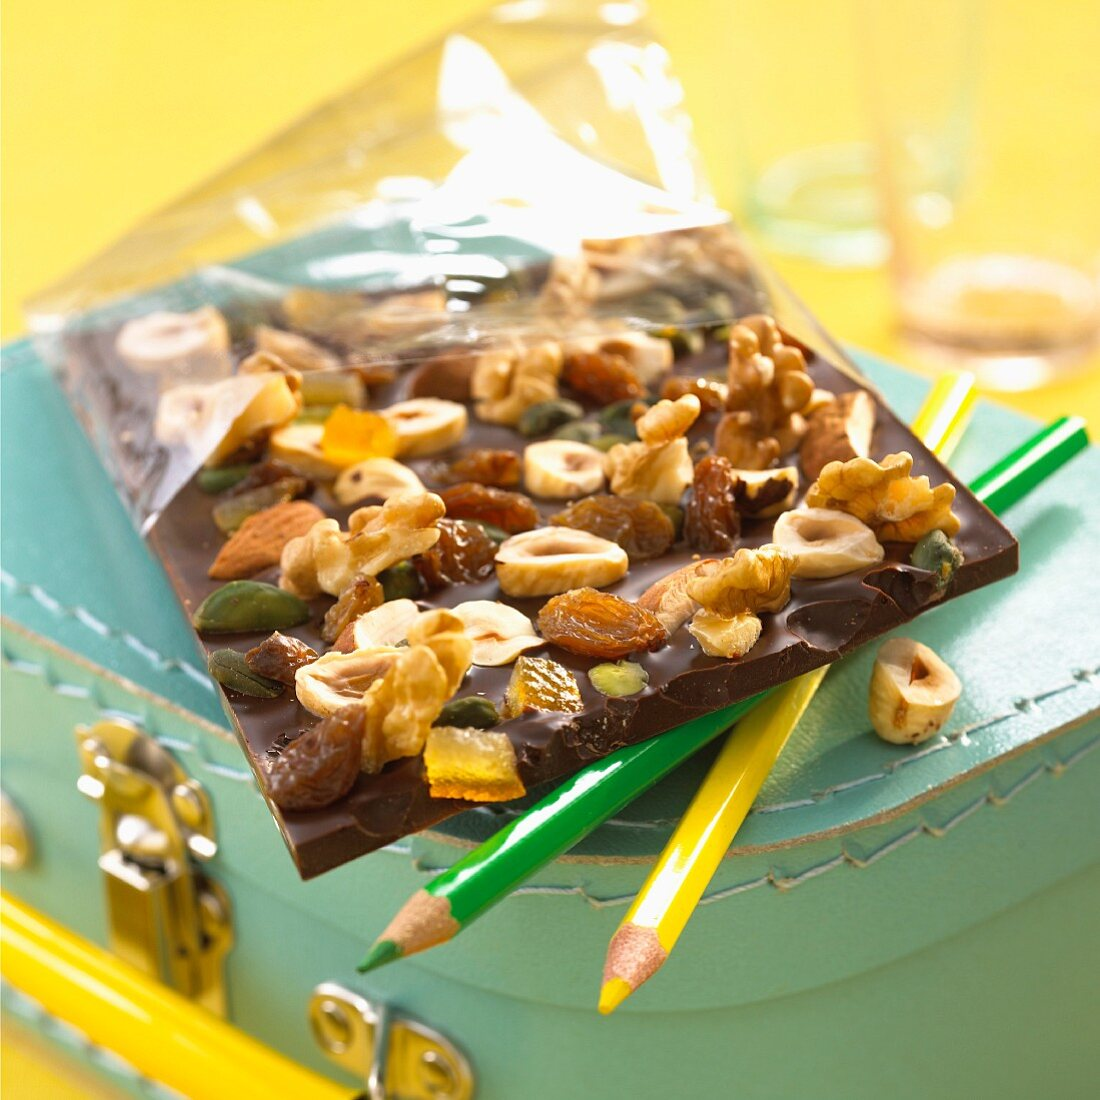 Chocolate with mixed nuts and fruit